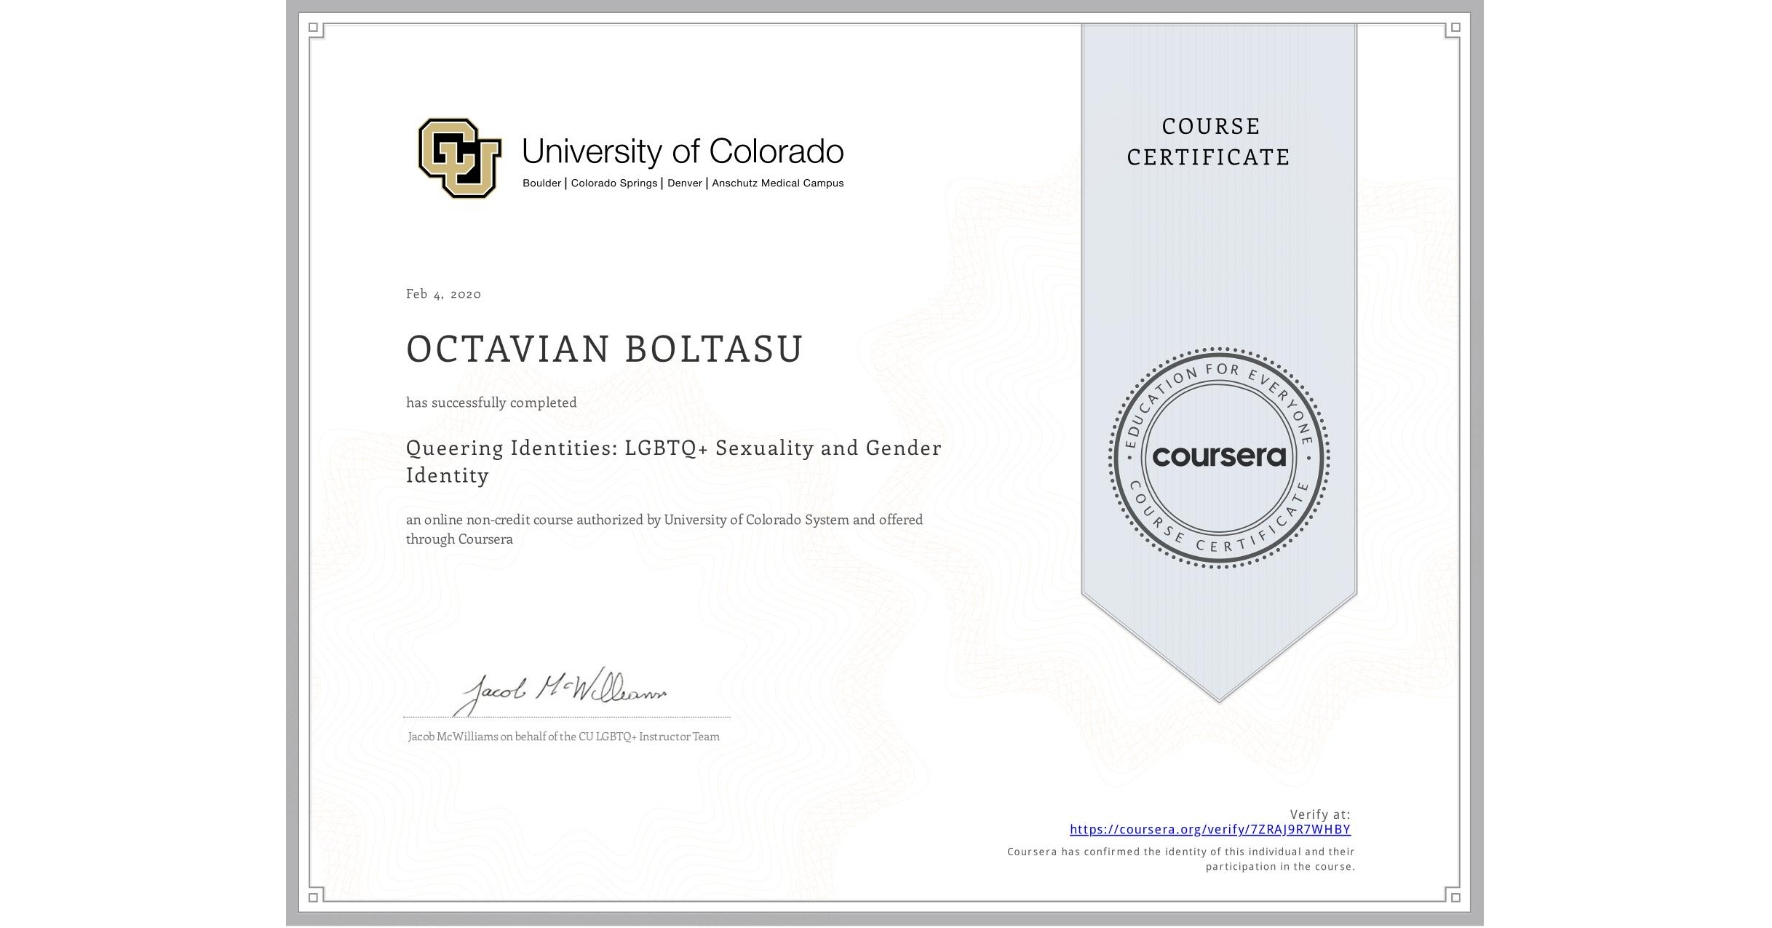 View certificate for OCTAVIAN BOLTASU, Queering Identities: LGBTQ+ Sexuality and Gender Identity, an online non-credit course authorized by University of Colorado System and offered through Coursera